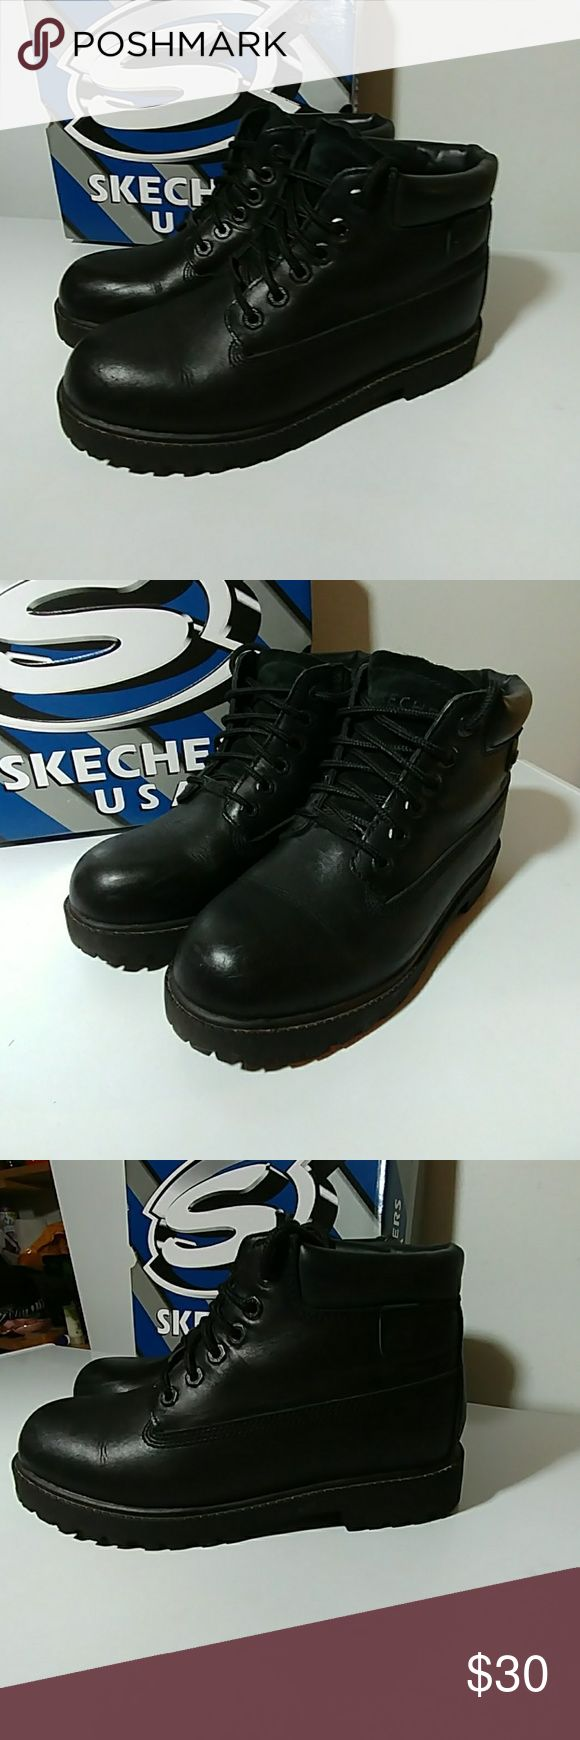 🎩Men's SKECHERS Black Boots. Up for grabs is this practically new pair of men's size 8.5 black Skechers boots. I really can't say enough how in fabulous condition that these boots really are. These are lace-up boots they are waterproof and they come with the Box. Skechers Shoes Boots